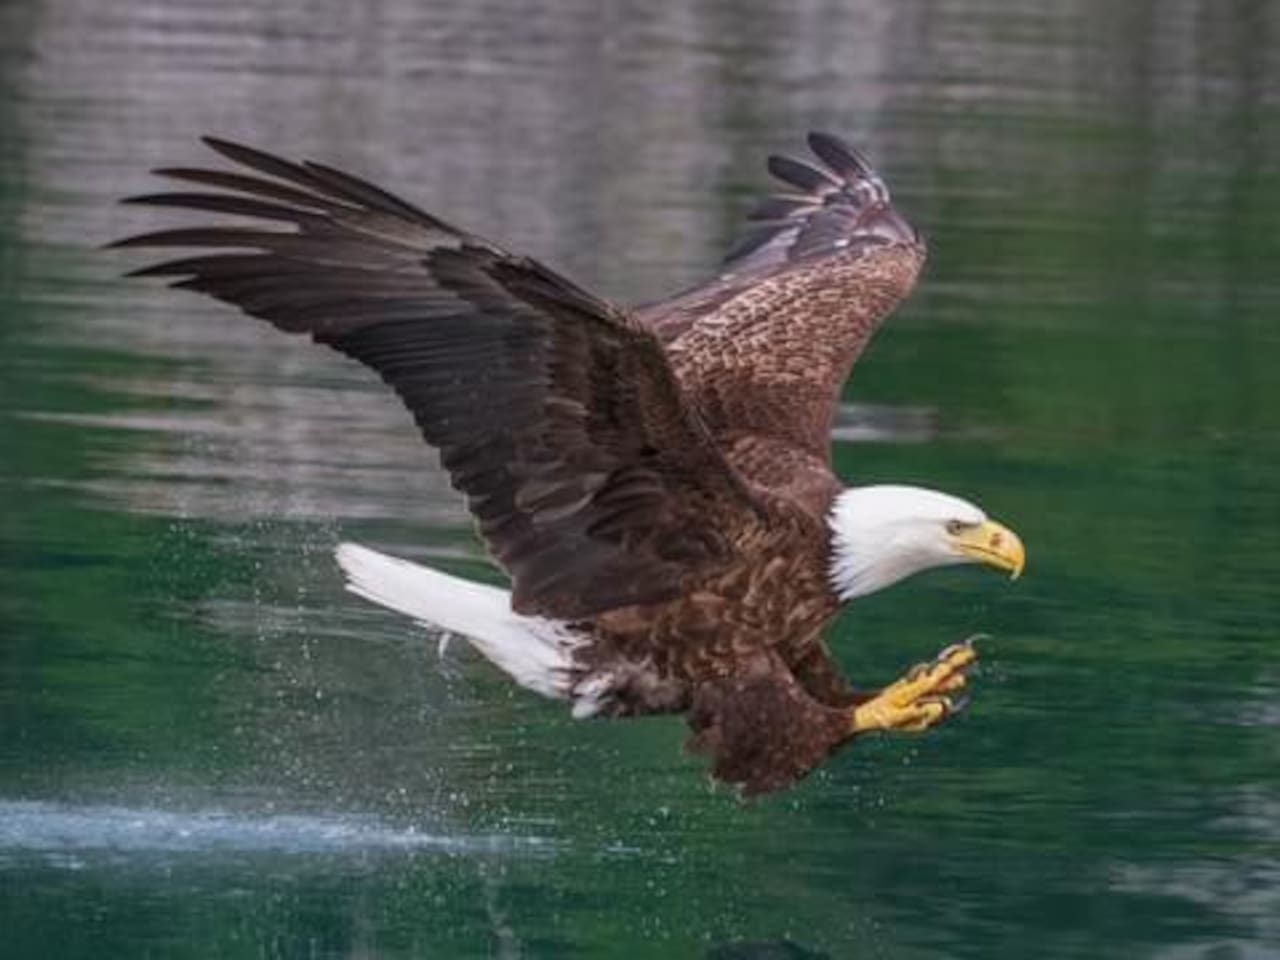 Watch our nesting pair of beautiful bald eagles fish in the crystal clear waters